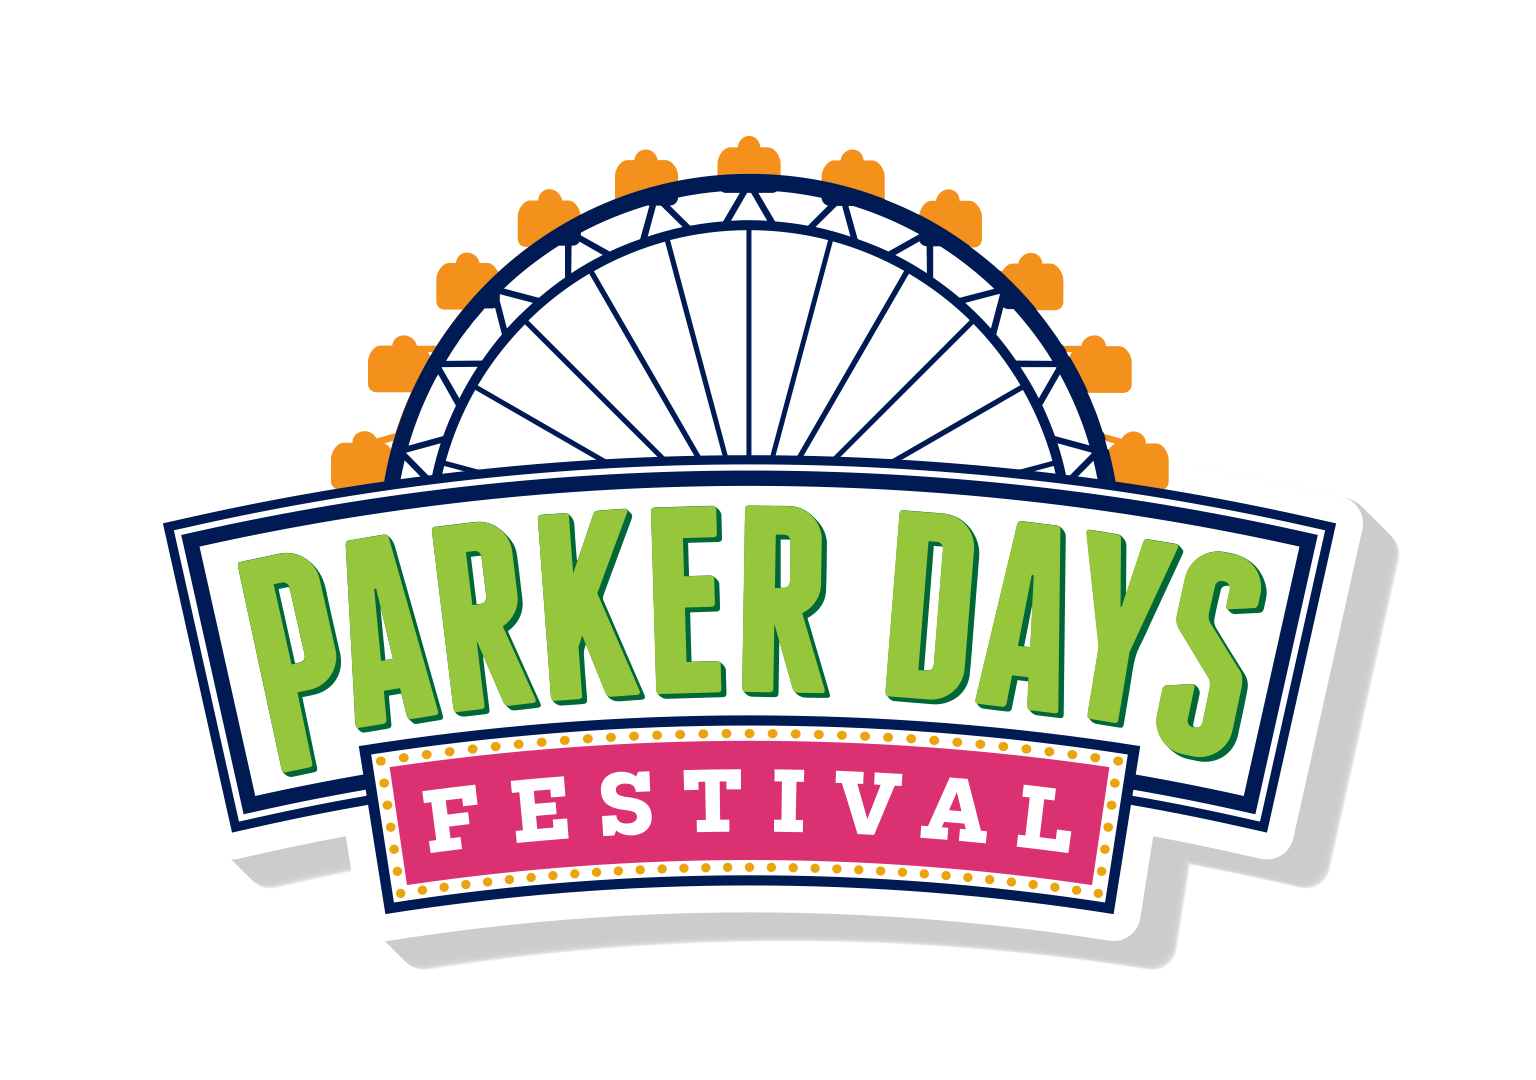 Parkers clipart clip royalty free download Parker Days Festival » clip royalty free download